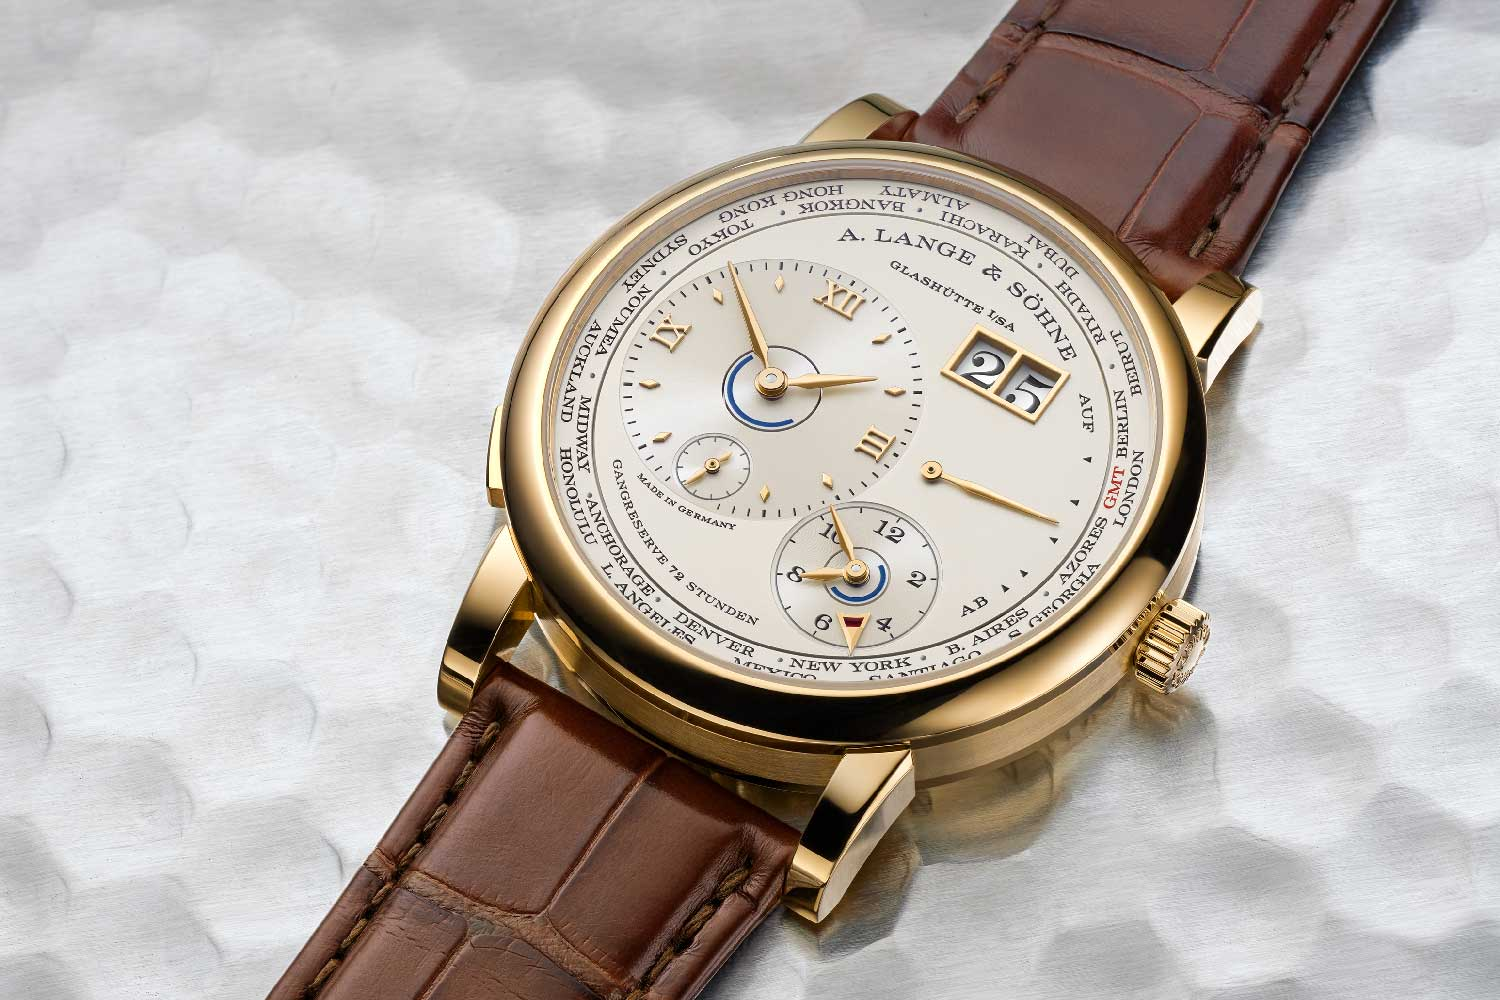 The new Lange 1 Time Zone in yellow gold